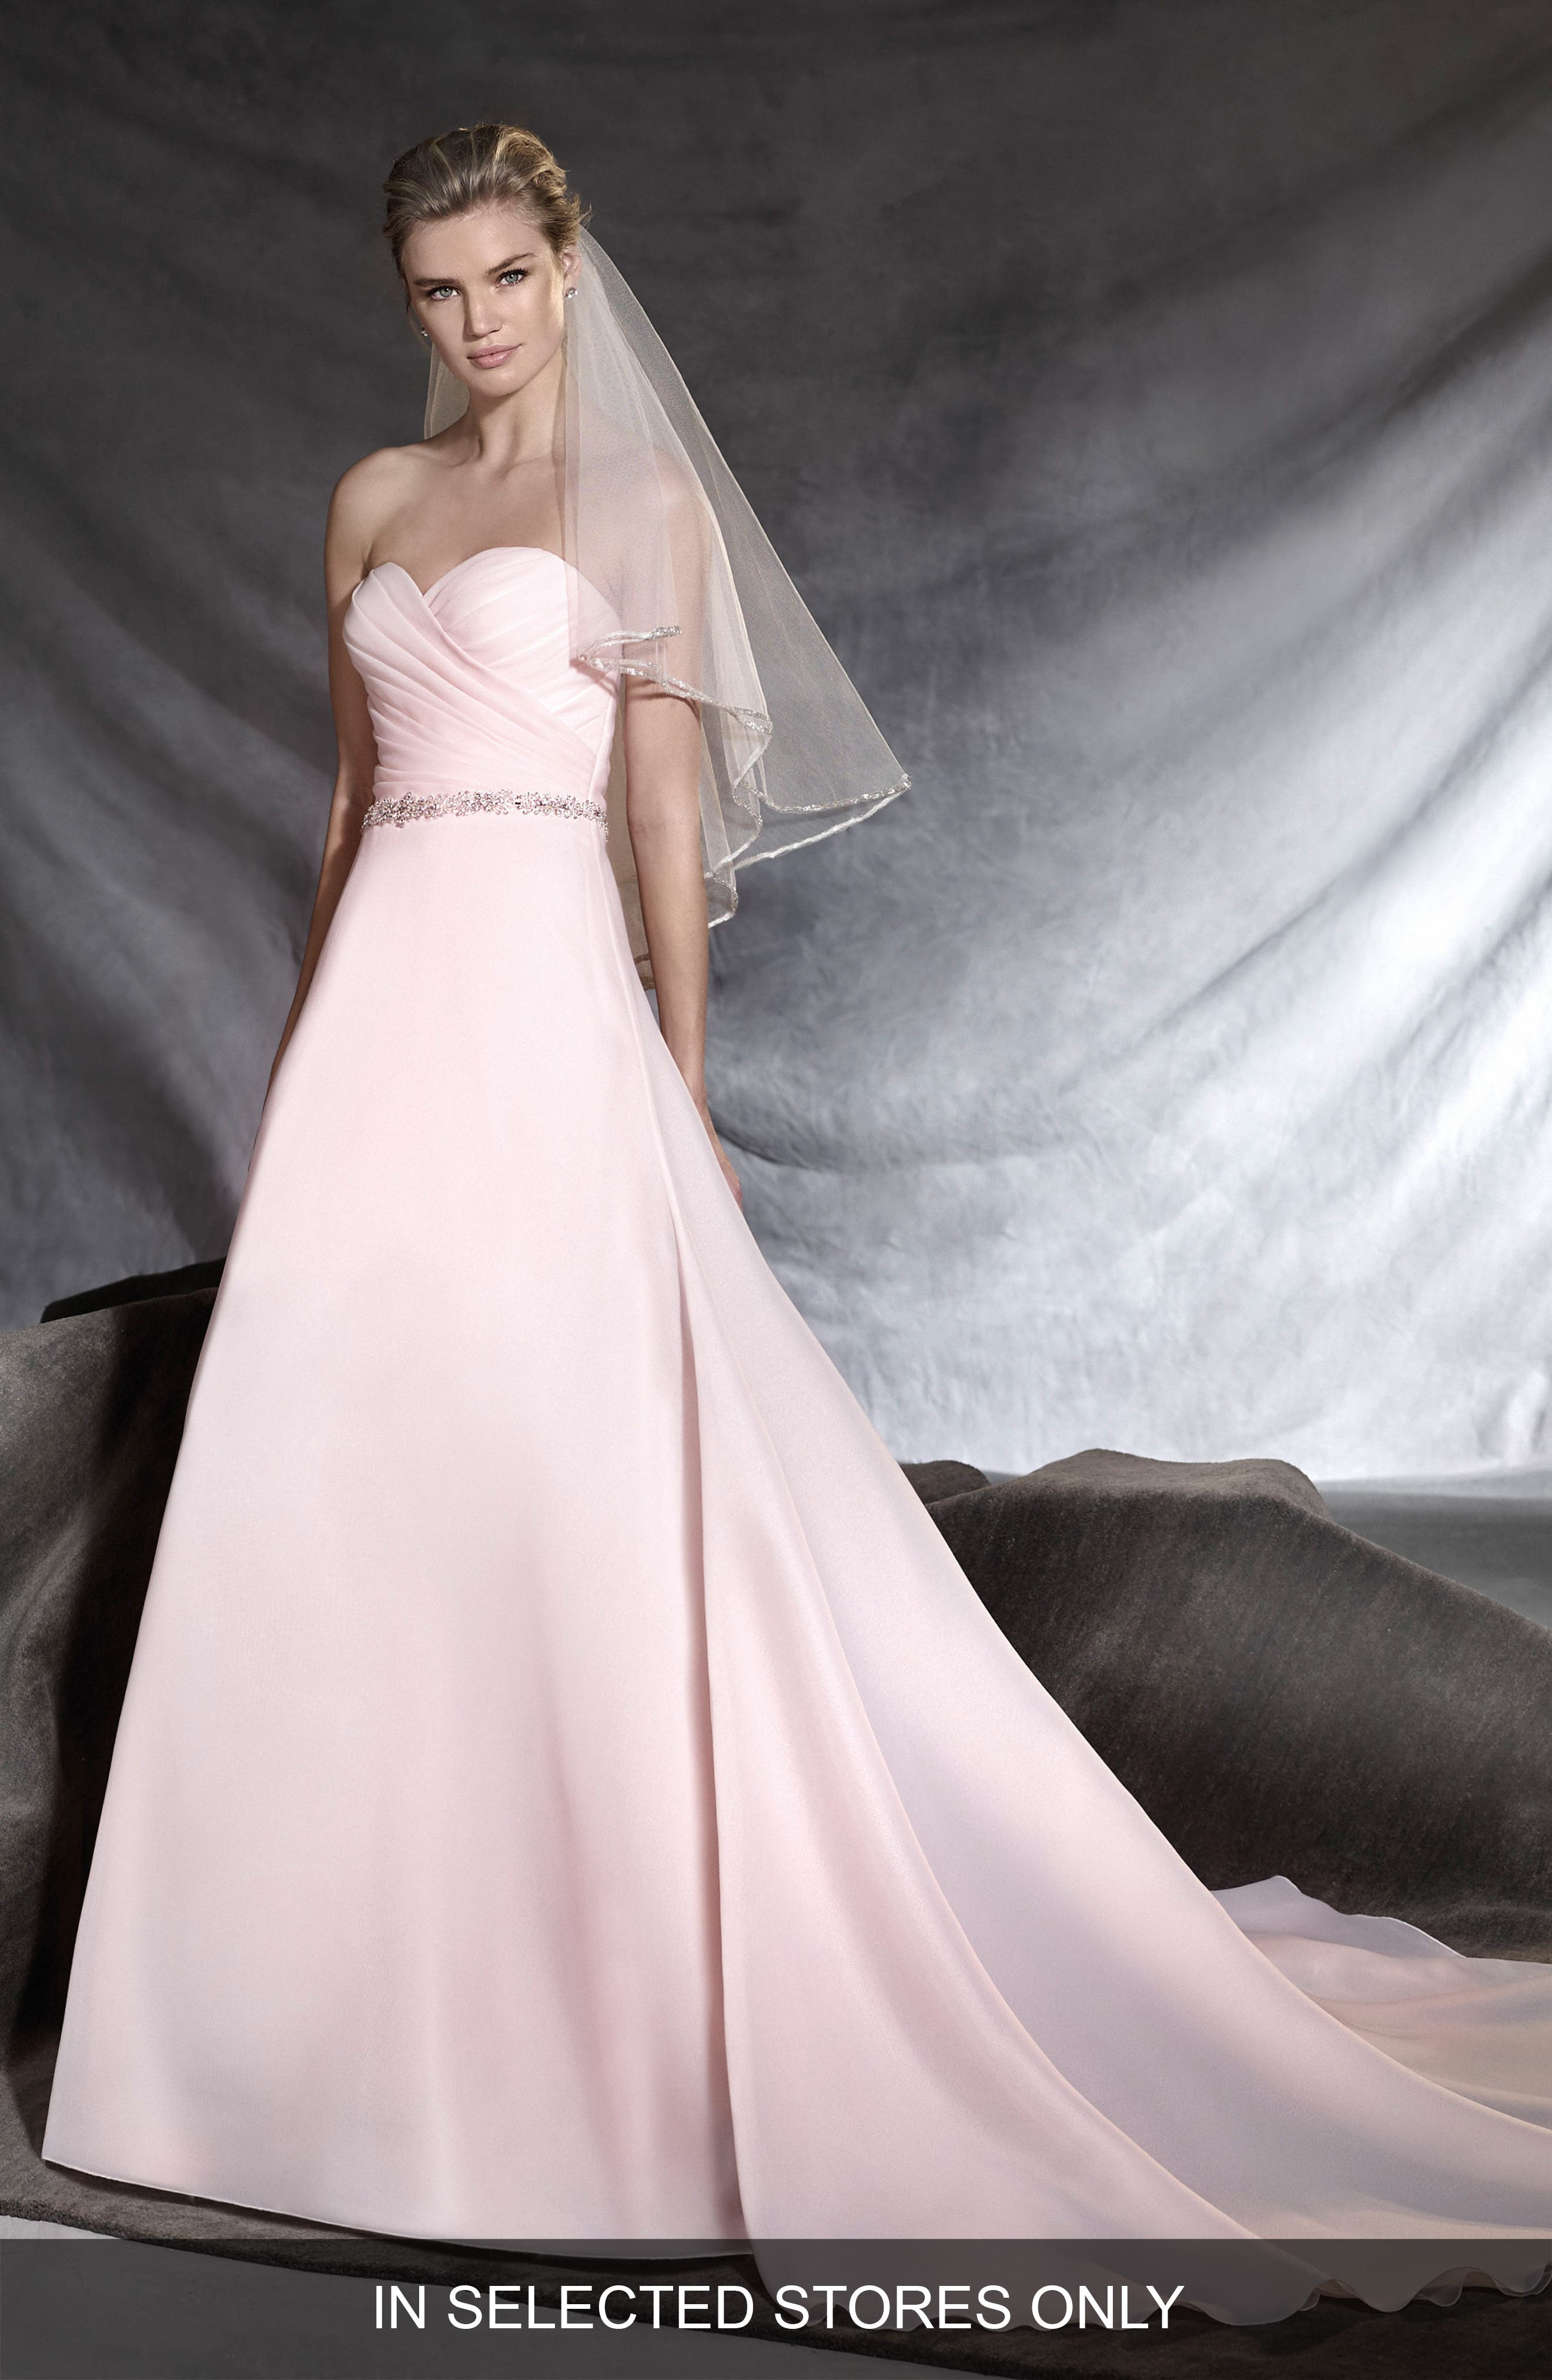 Ortuella Strapless Chiffon A-Line Gown,                             Main thumbnail 1, color,                             Pink